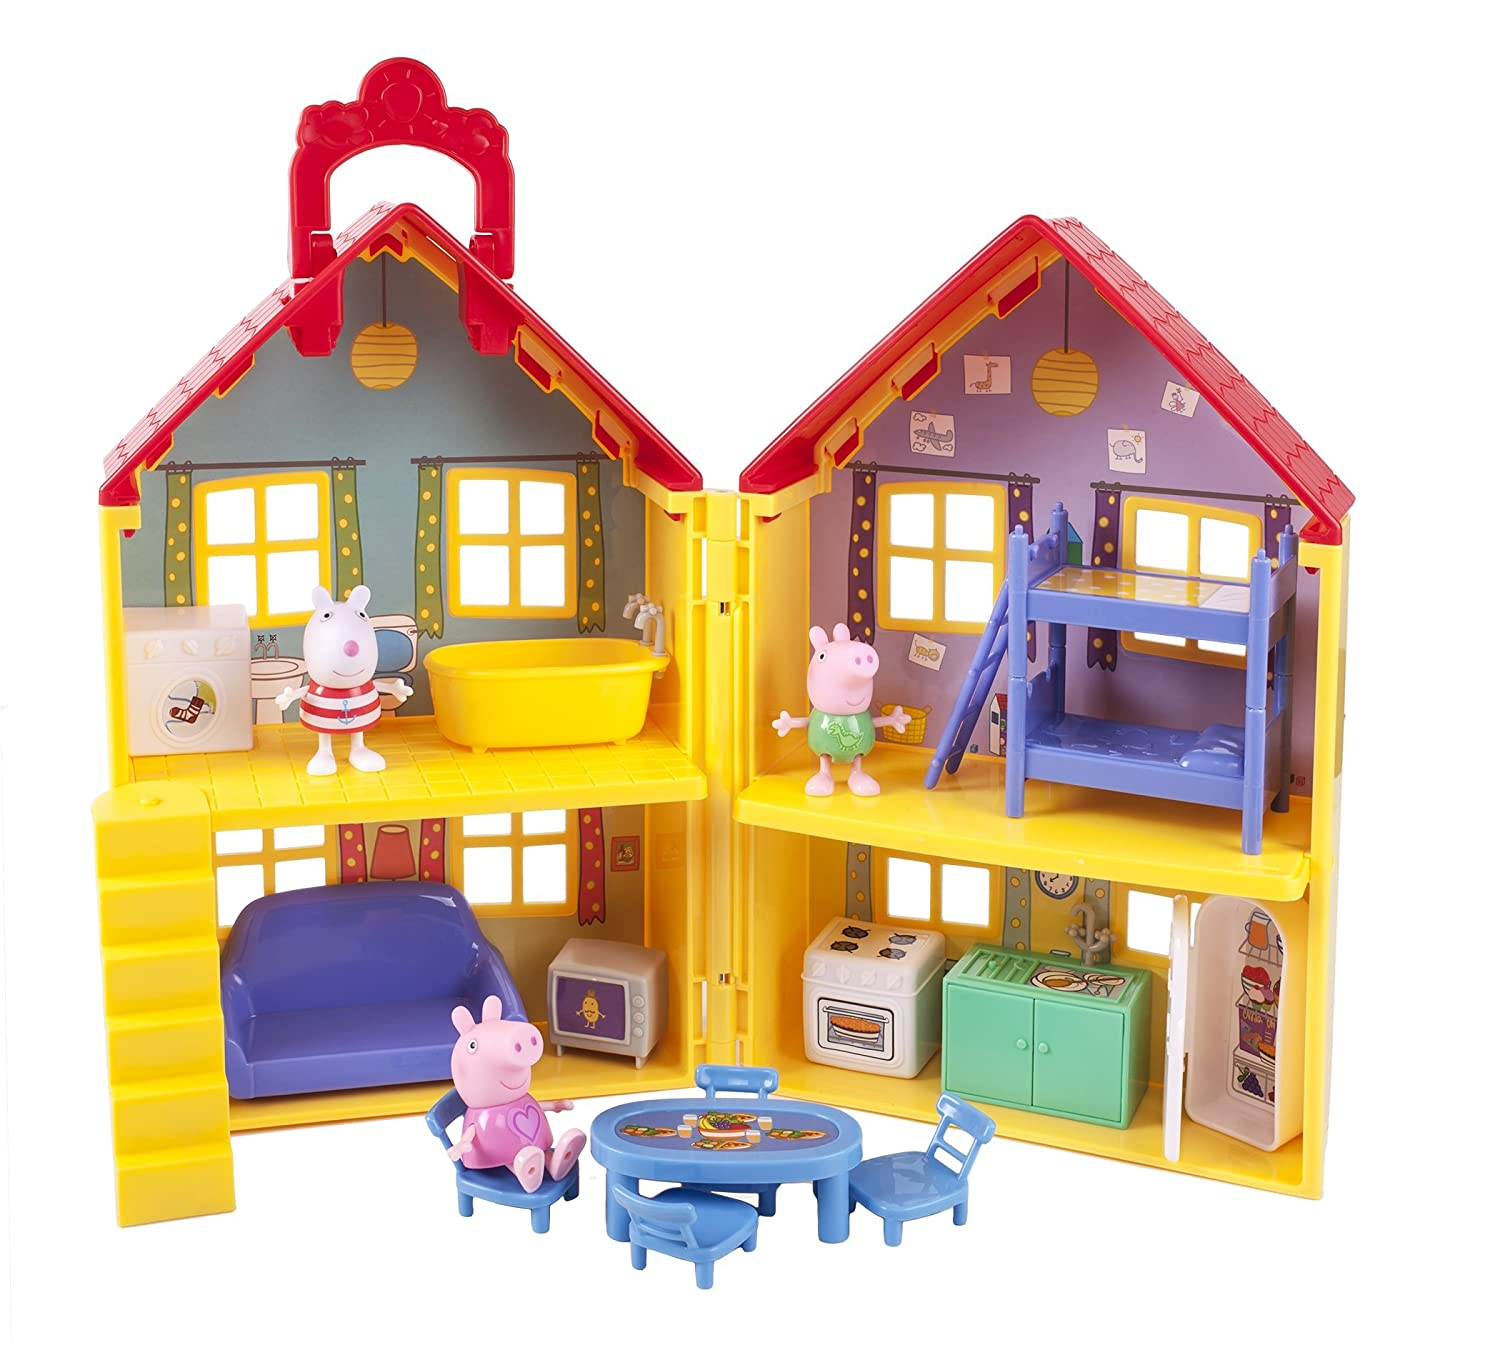 Peppa Pig's Deluxe House Review